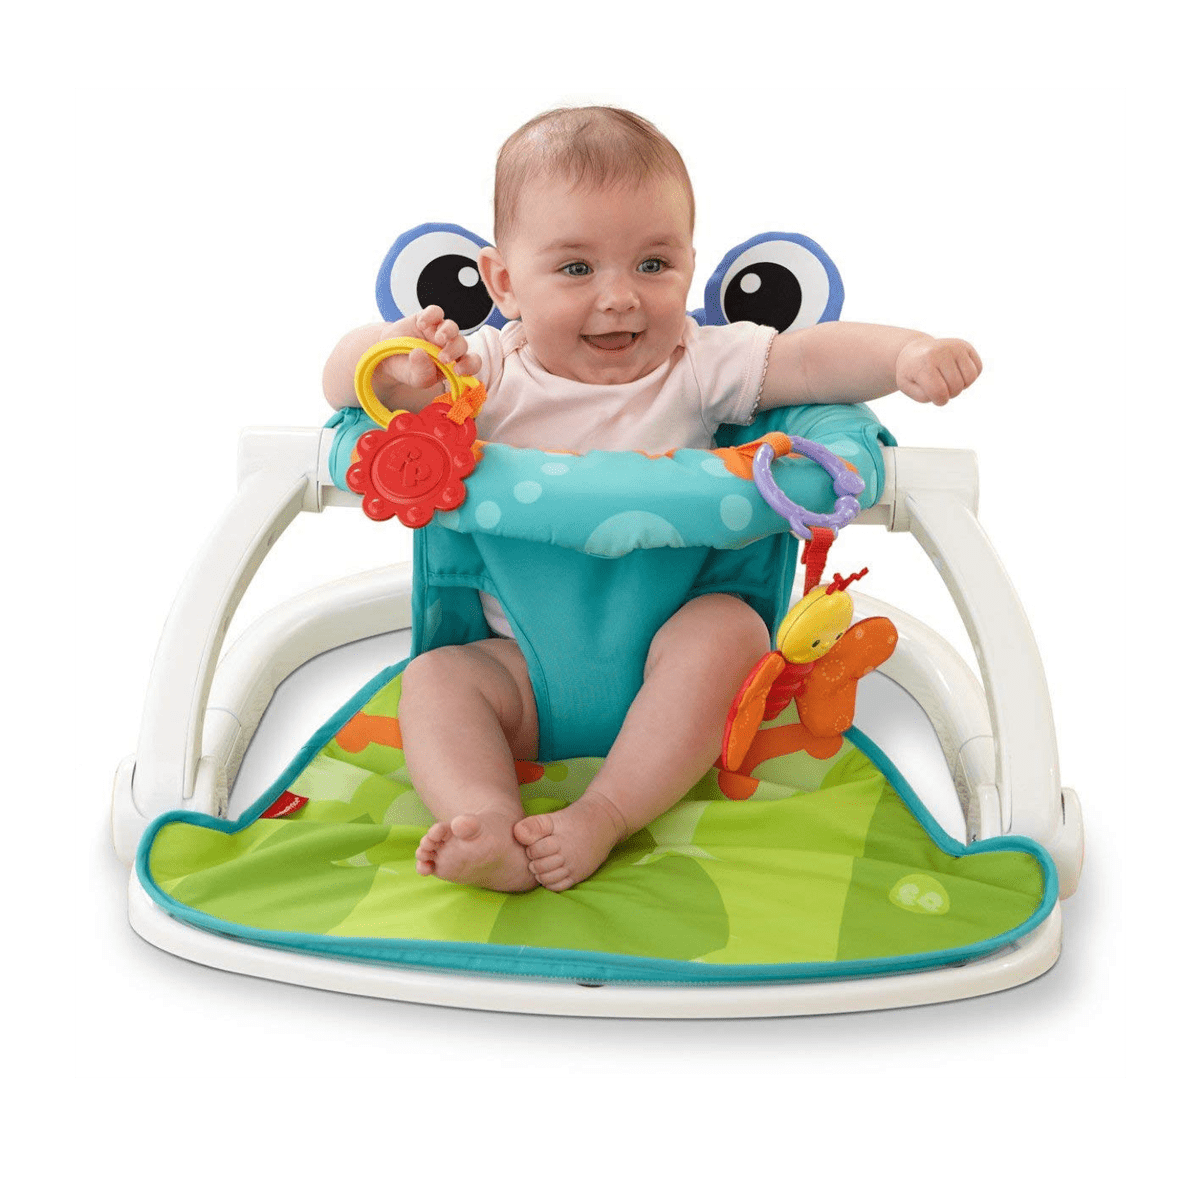 Baby Upright Floor Seat - SquareDubai